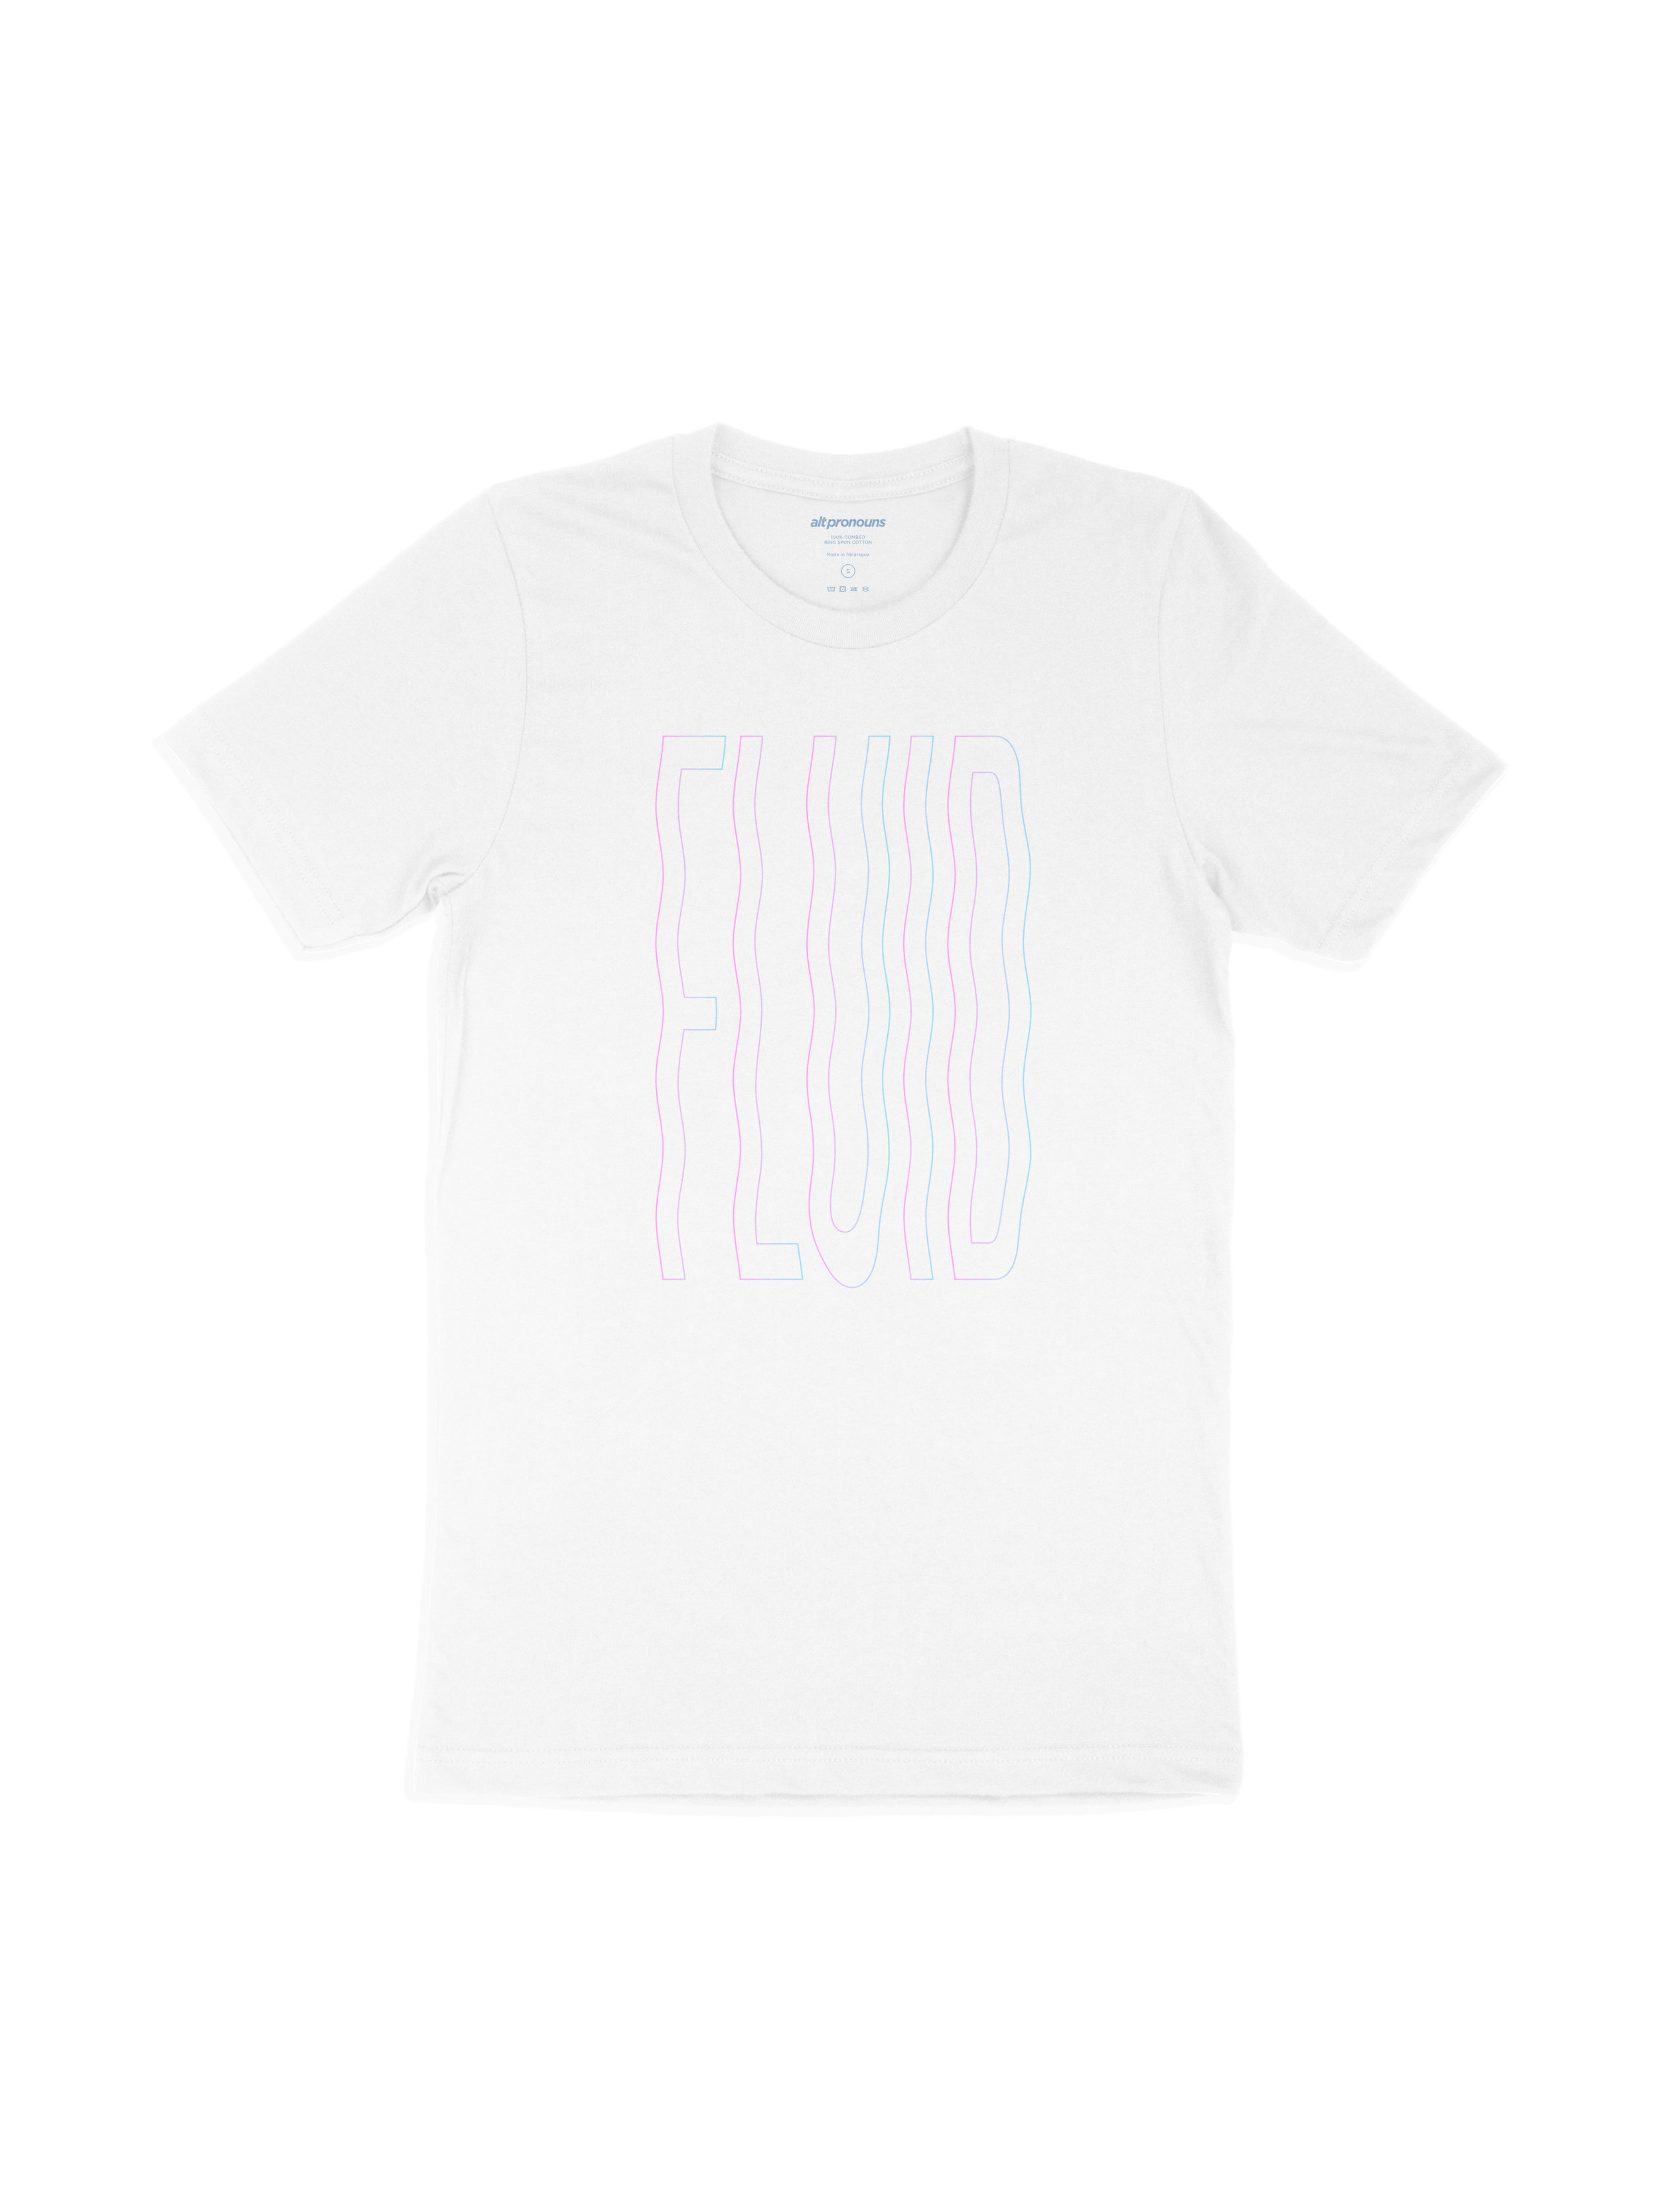 Alt Pronouns Fluid Vibes Tee in White